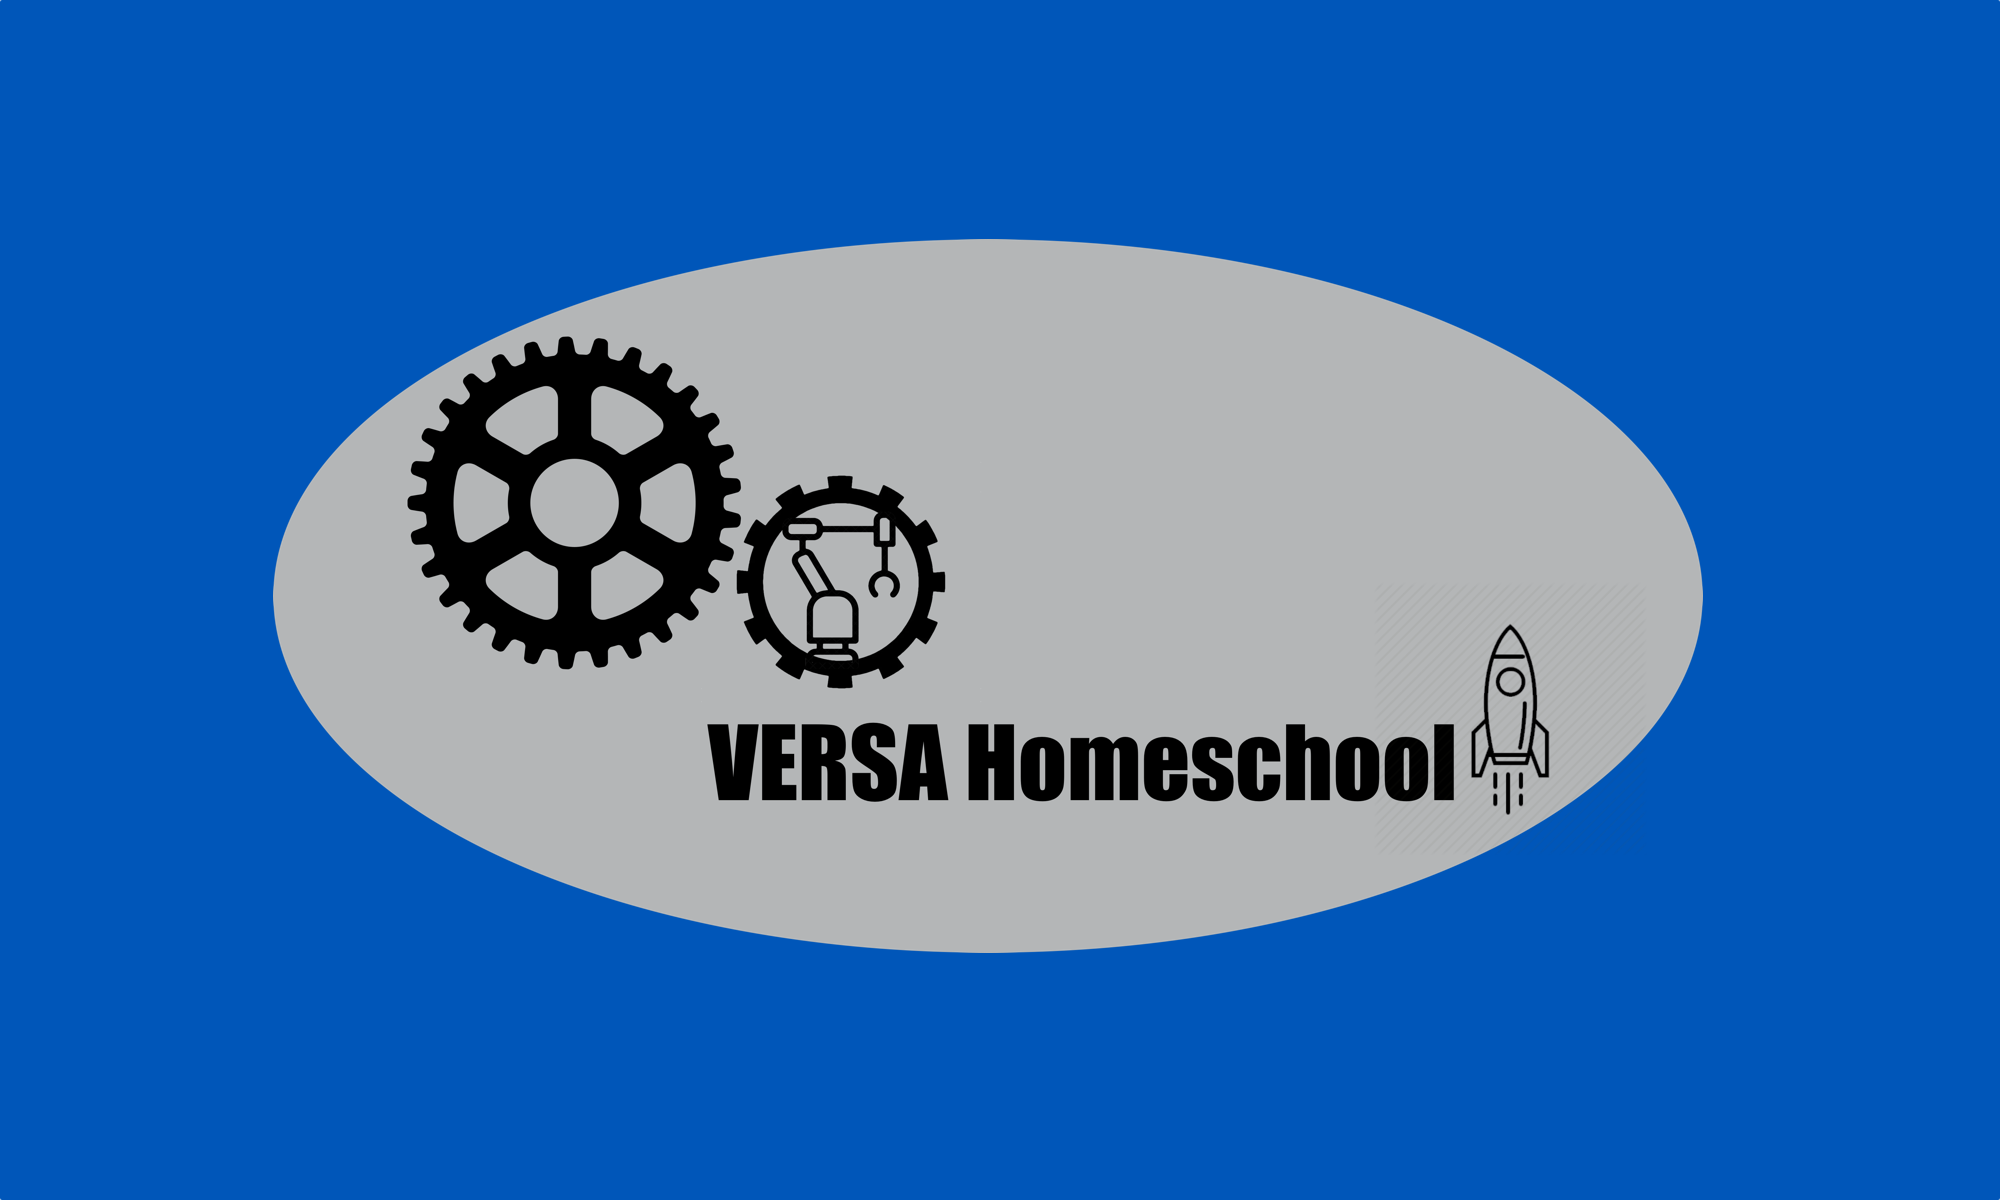 VERSA Homeschool